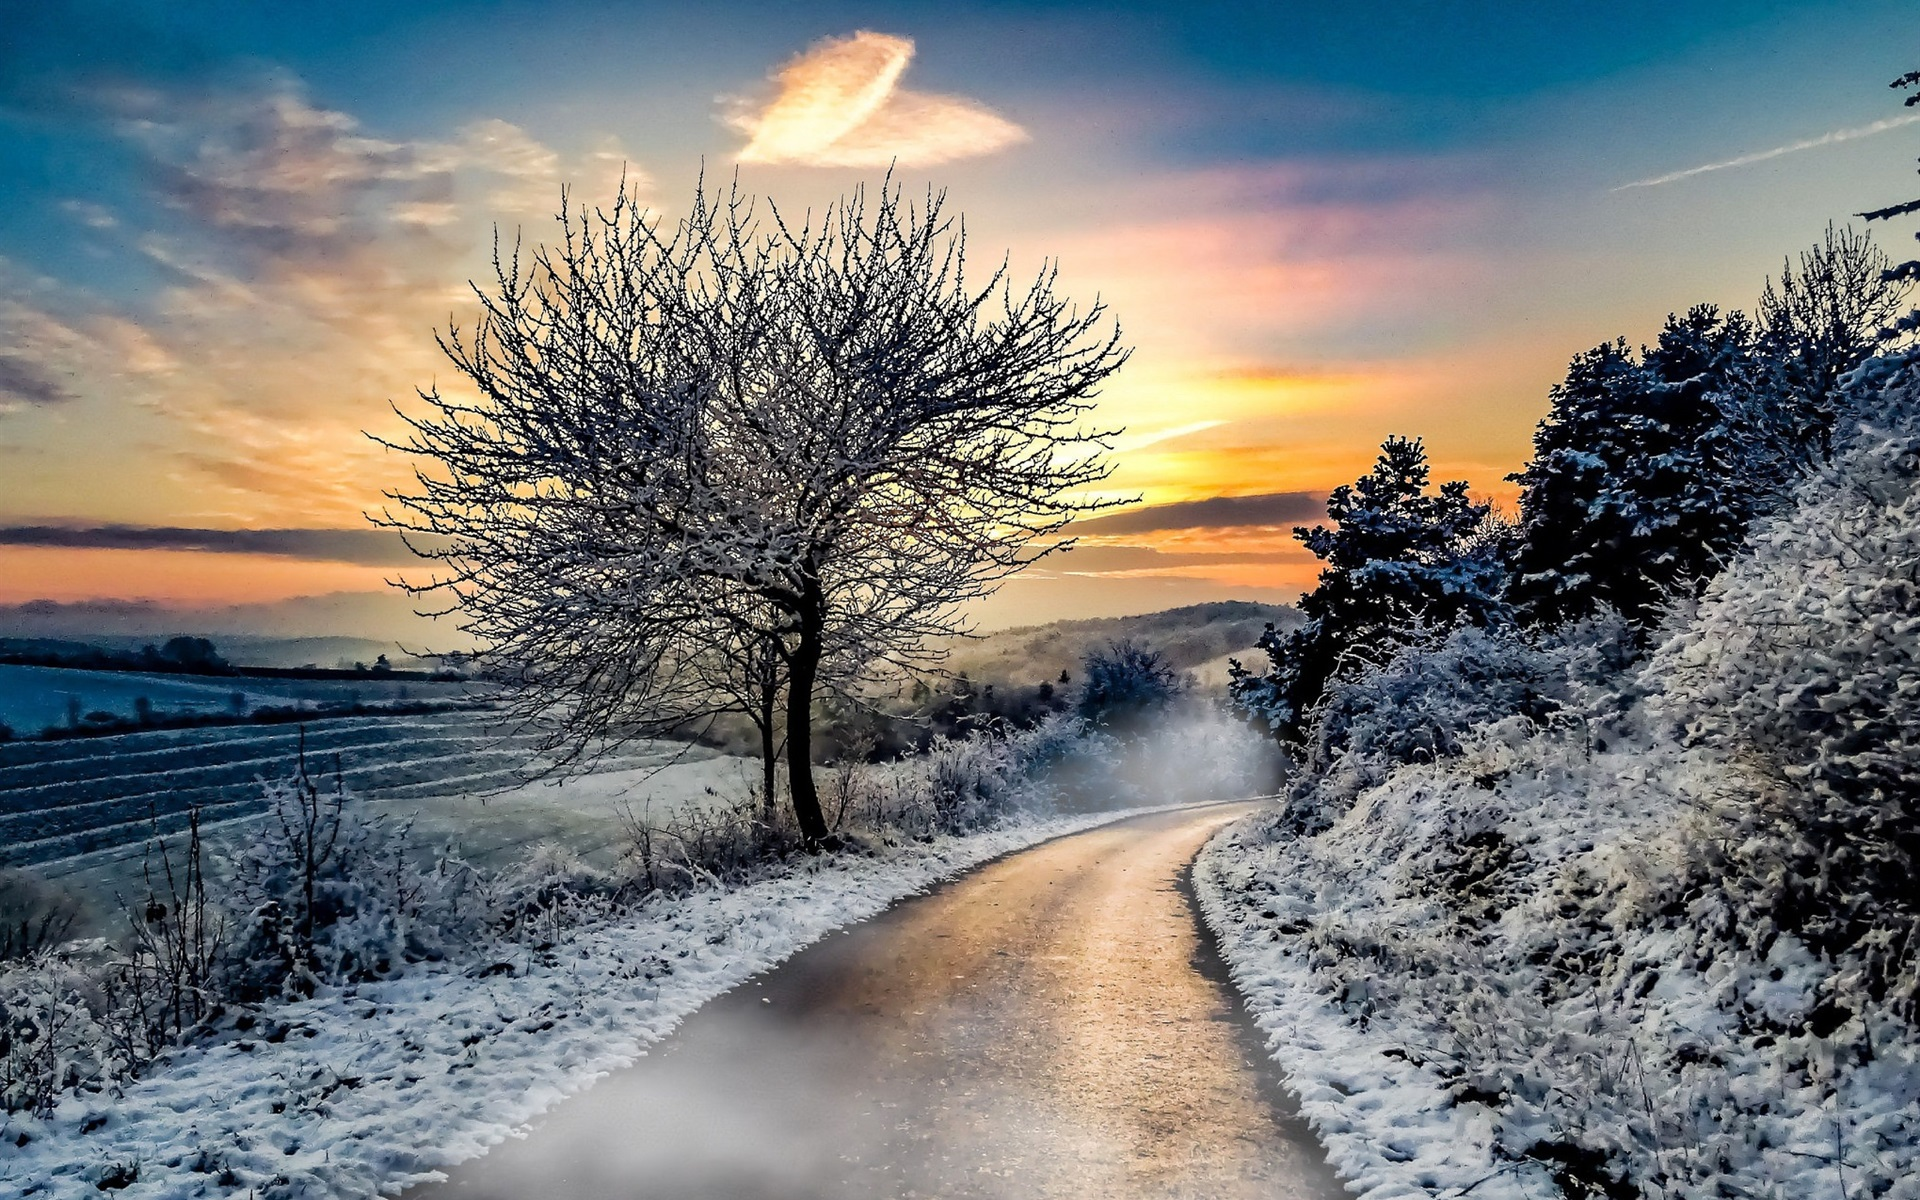 Wallpaper Winter Snow Trees Road Sunset 1920x1200 HD Picture Image